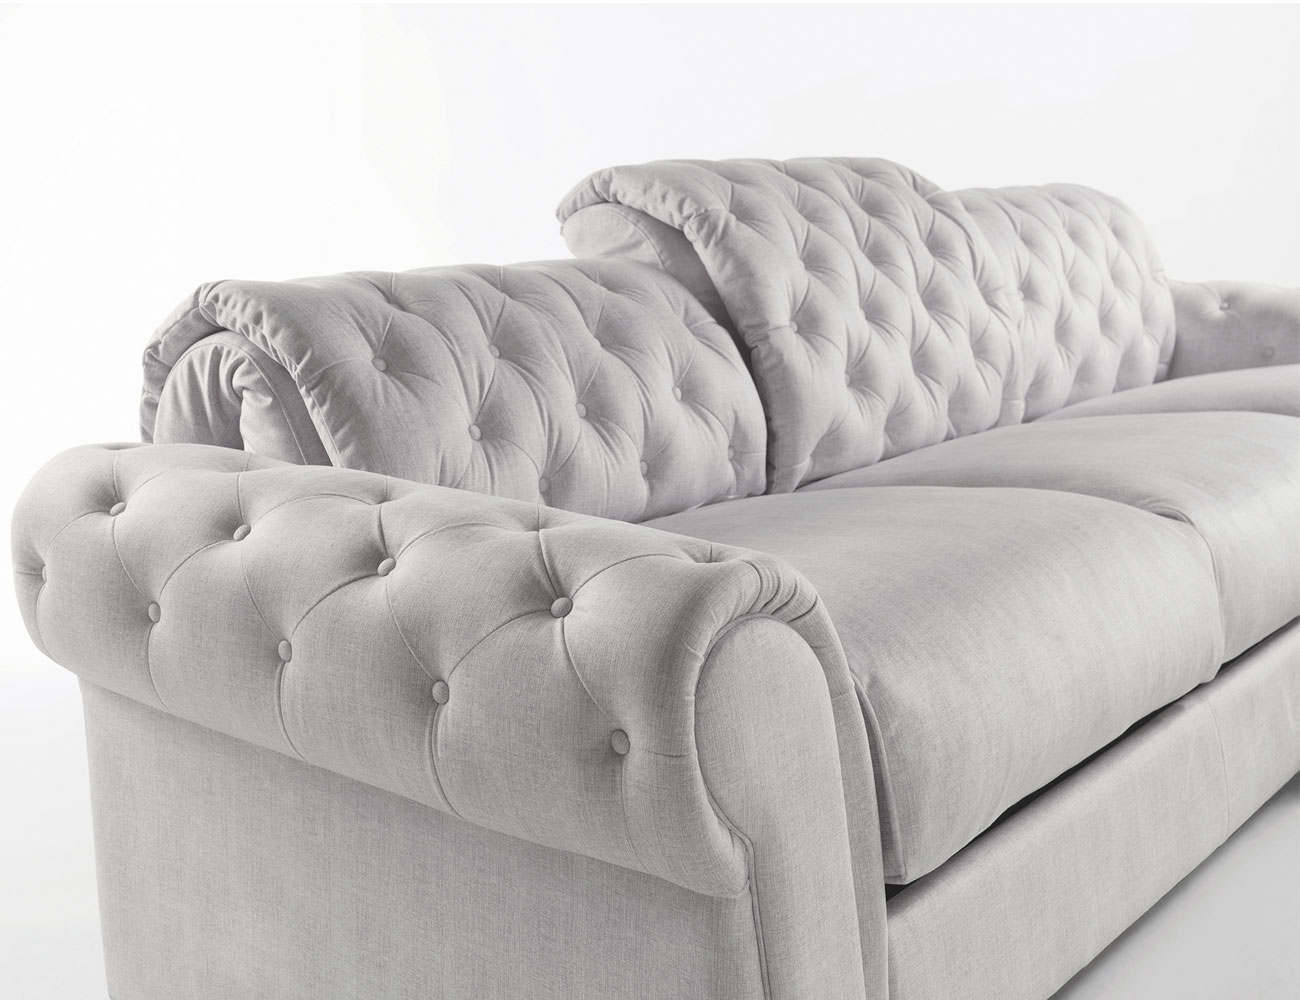 Sofa chaiselongue gran lujo decorativo capitone blanco tela 126